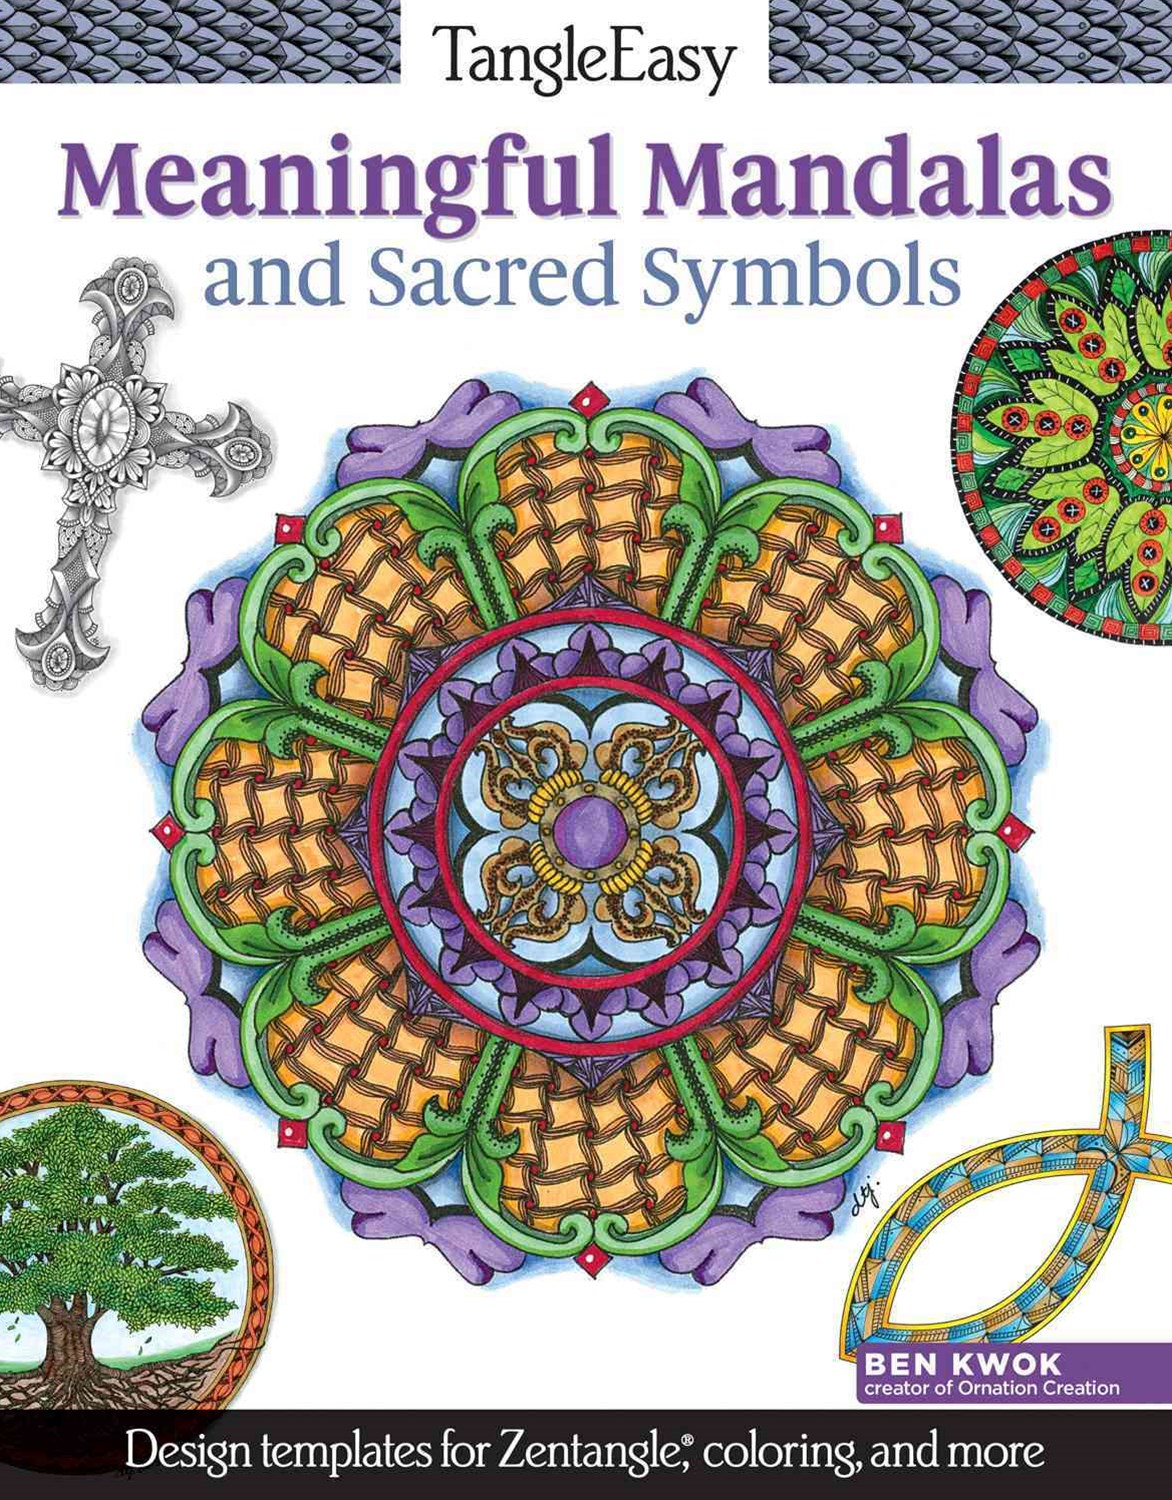 TangleEasy Meaningful Mandalas and Sacred Symbols